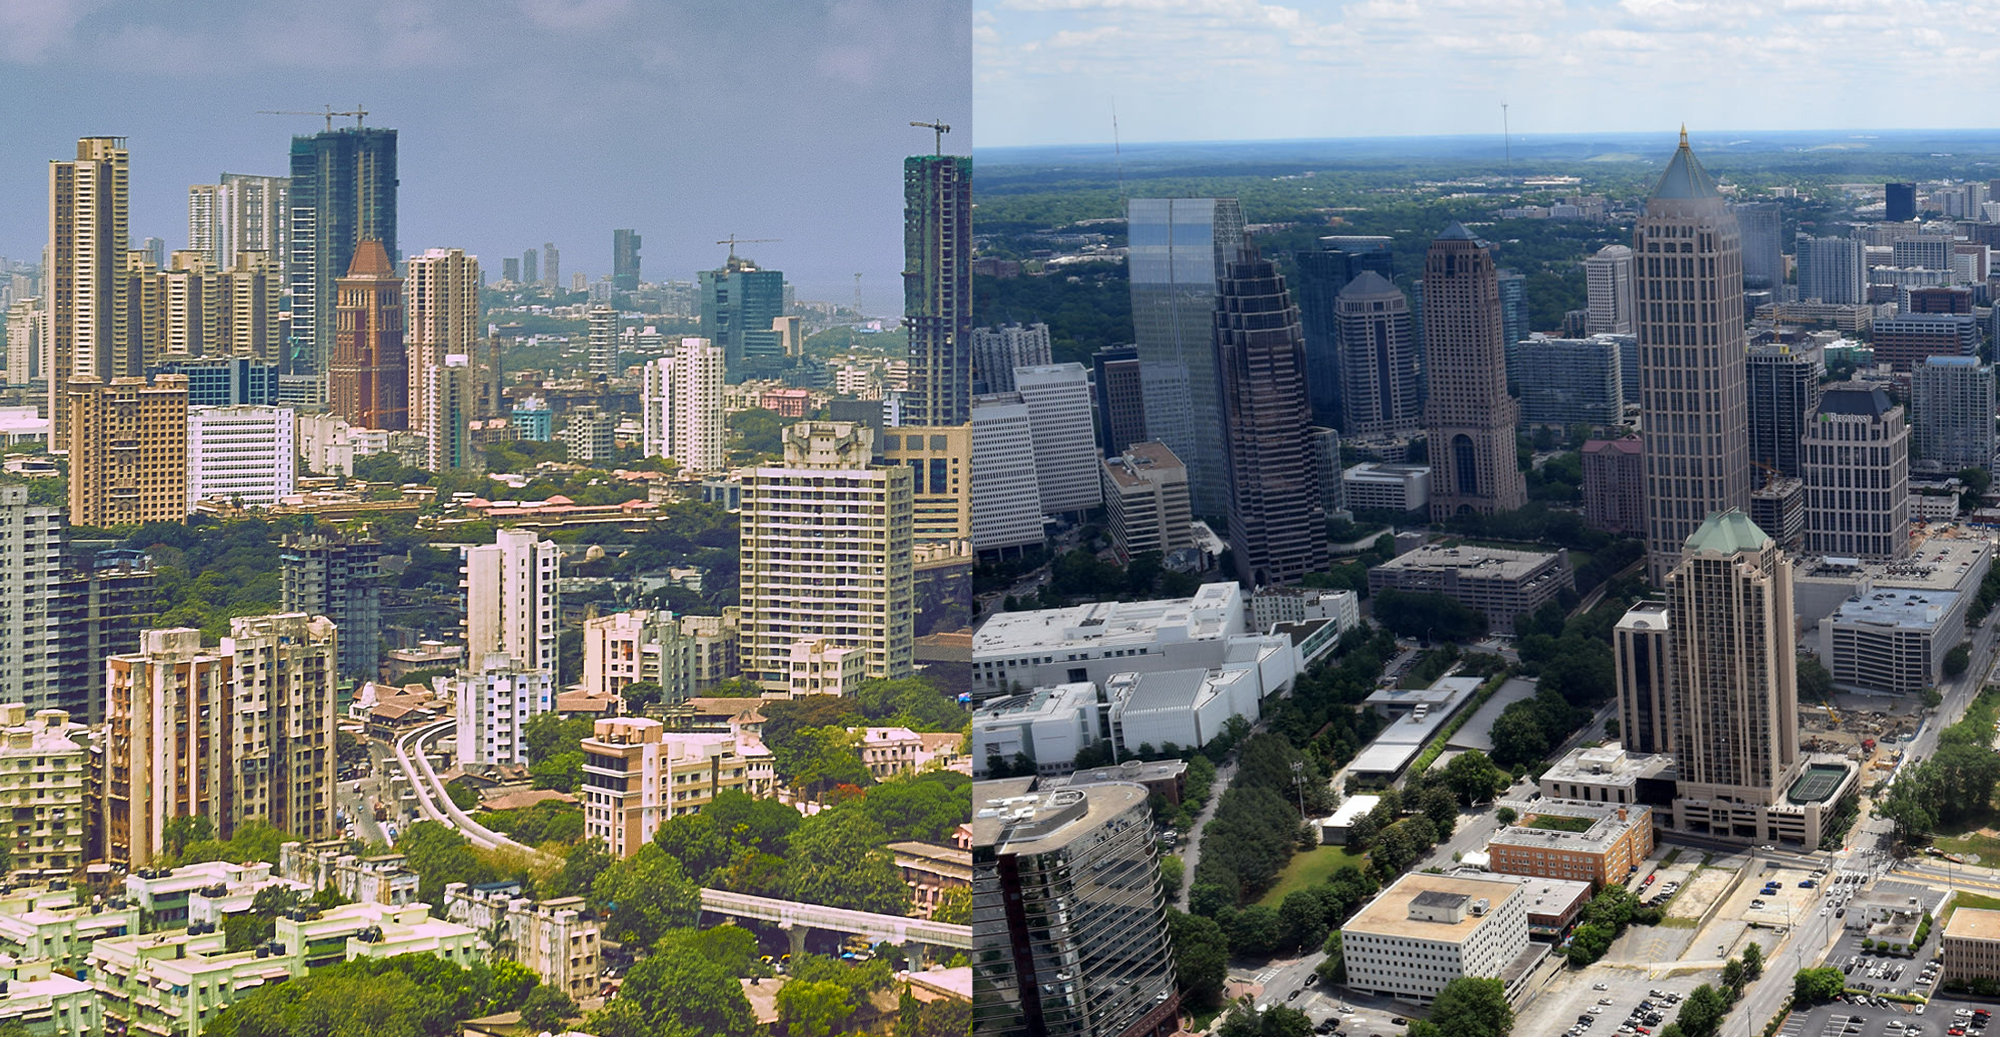 Does it matter if we can't distinguish Atlanta from Mumbai?